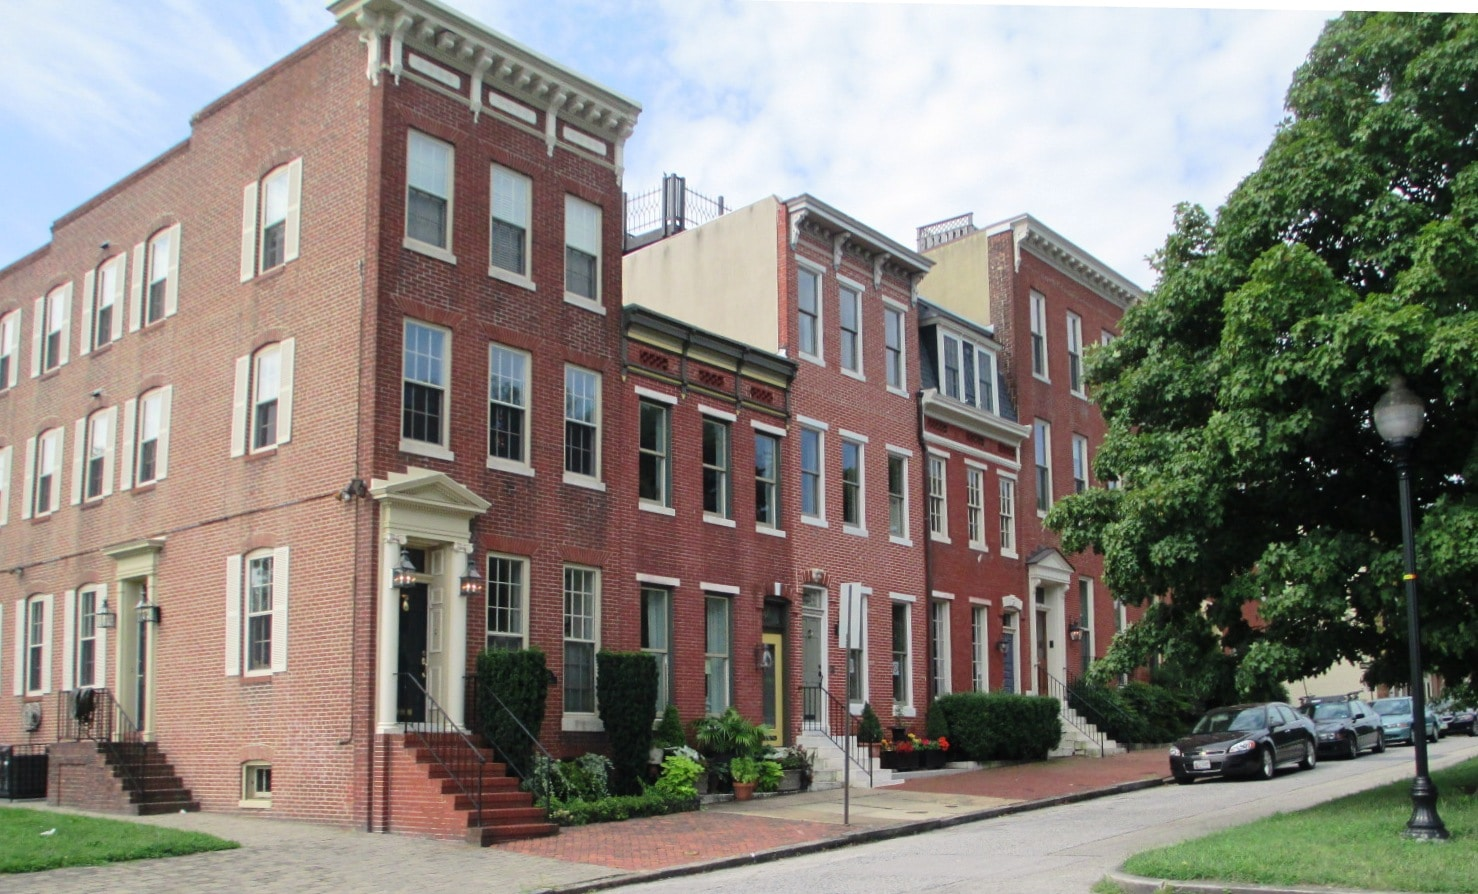 federal hill - Homes overlooking park